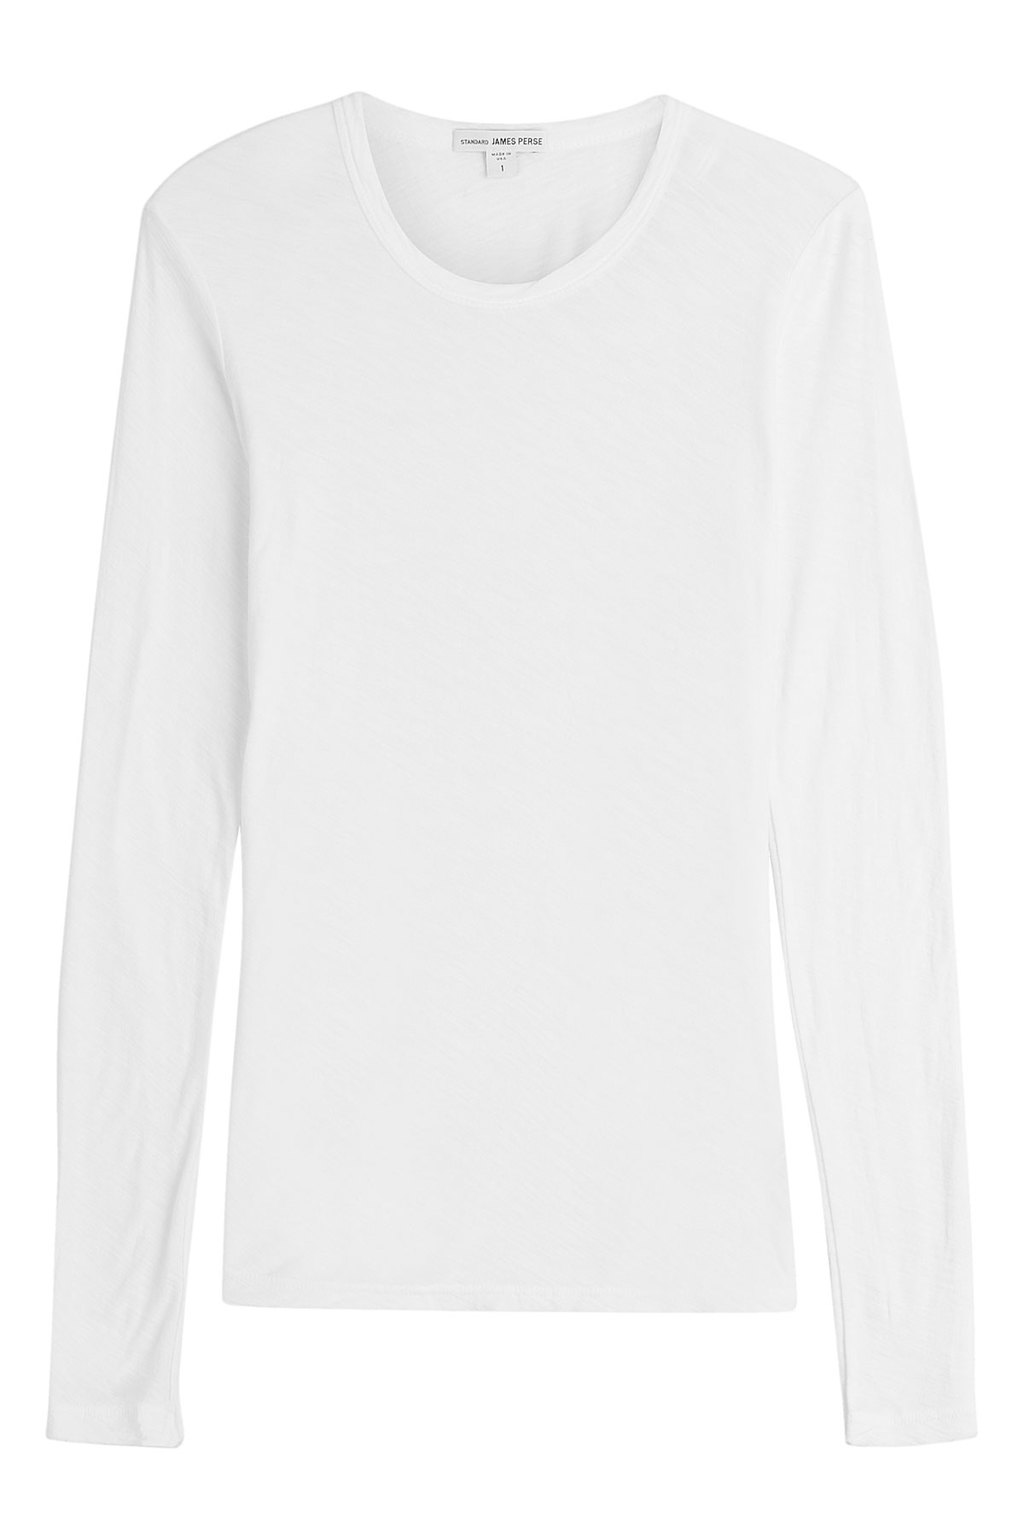 Long Sleeved Cotton Top - pattern: plain; predominant colour: white; occasions: casual; length: standard; style: top; fibres: cotton - 100%; fit: body skimming; neckline: crew; sleeve length: long sleeve; sleeve style: standard; pattern type: fabric; texture group: jersey - stretchy/drapey; wardrobe: basic; season: a/w 2016